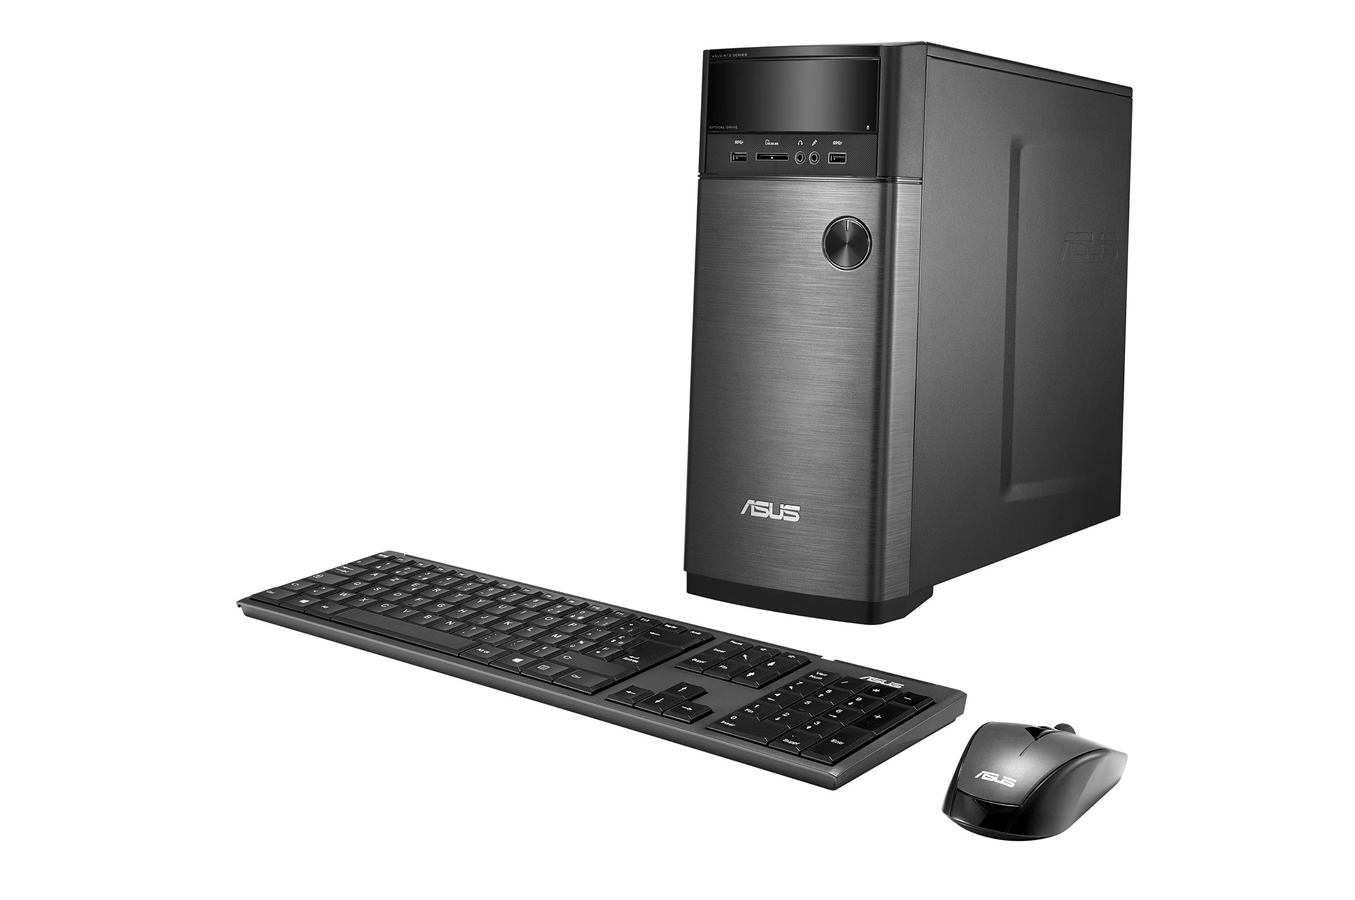 Darty Ordinateur Bureau Pc De Bureau Asus M12ad Fr005s 4073673 Darty